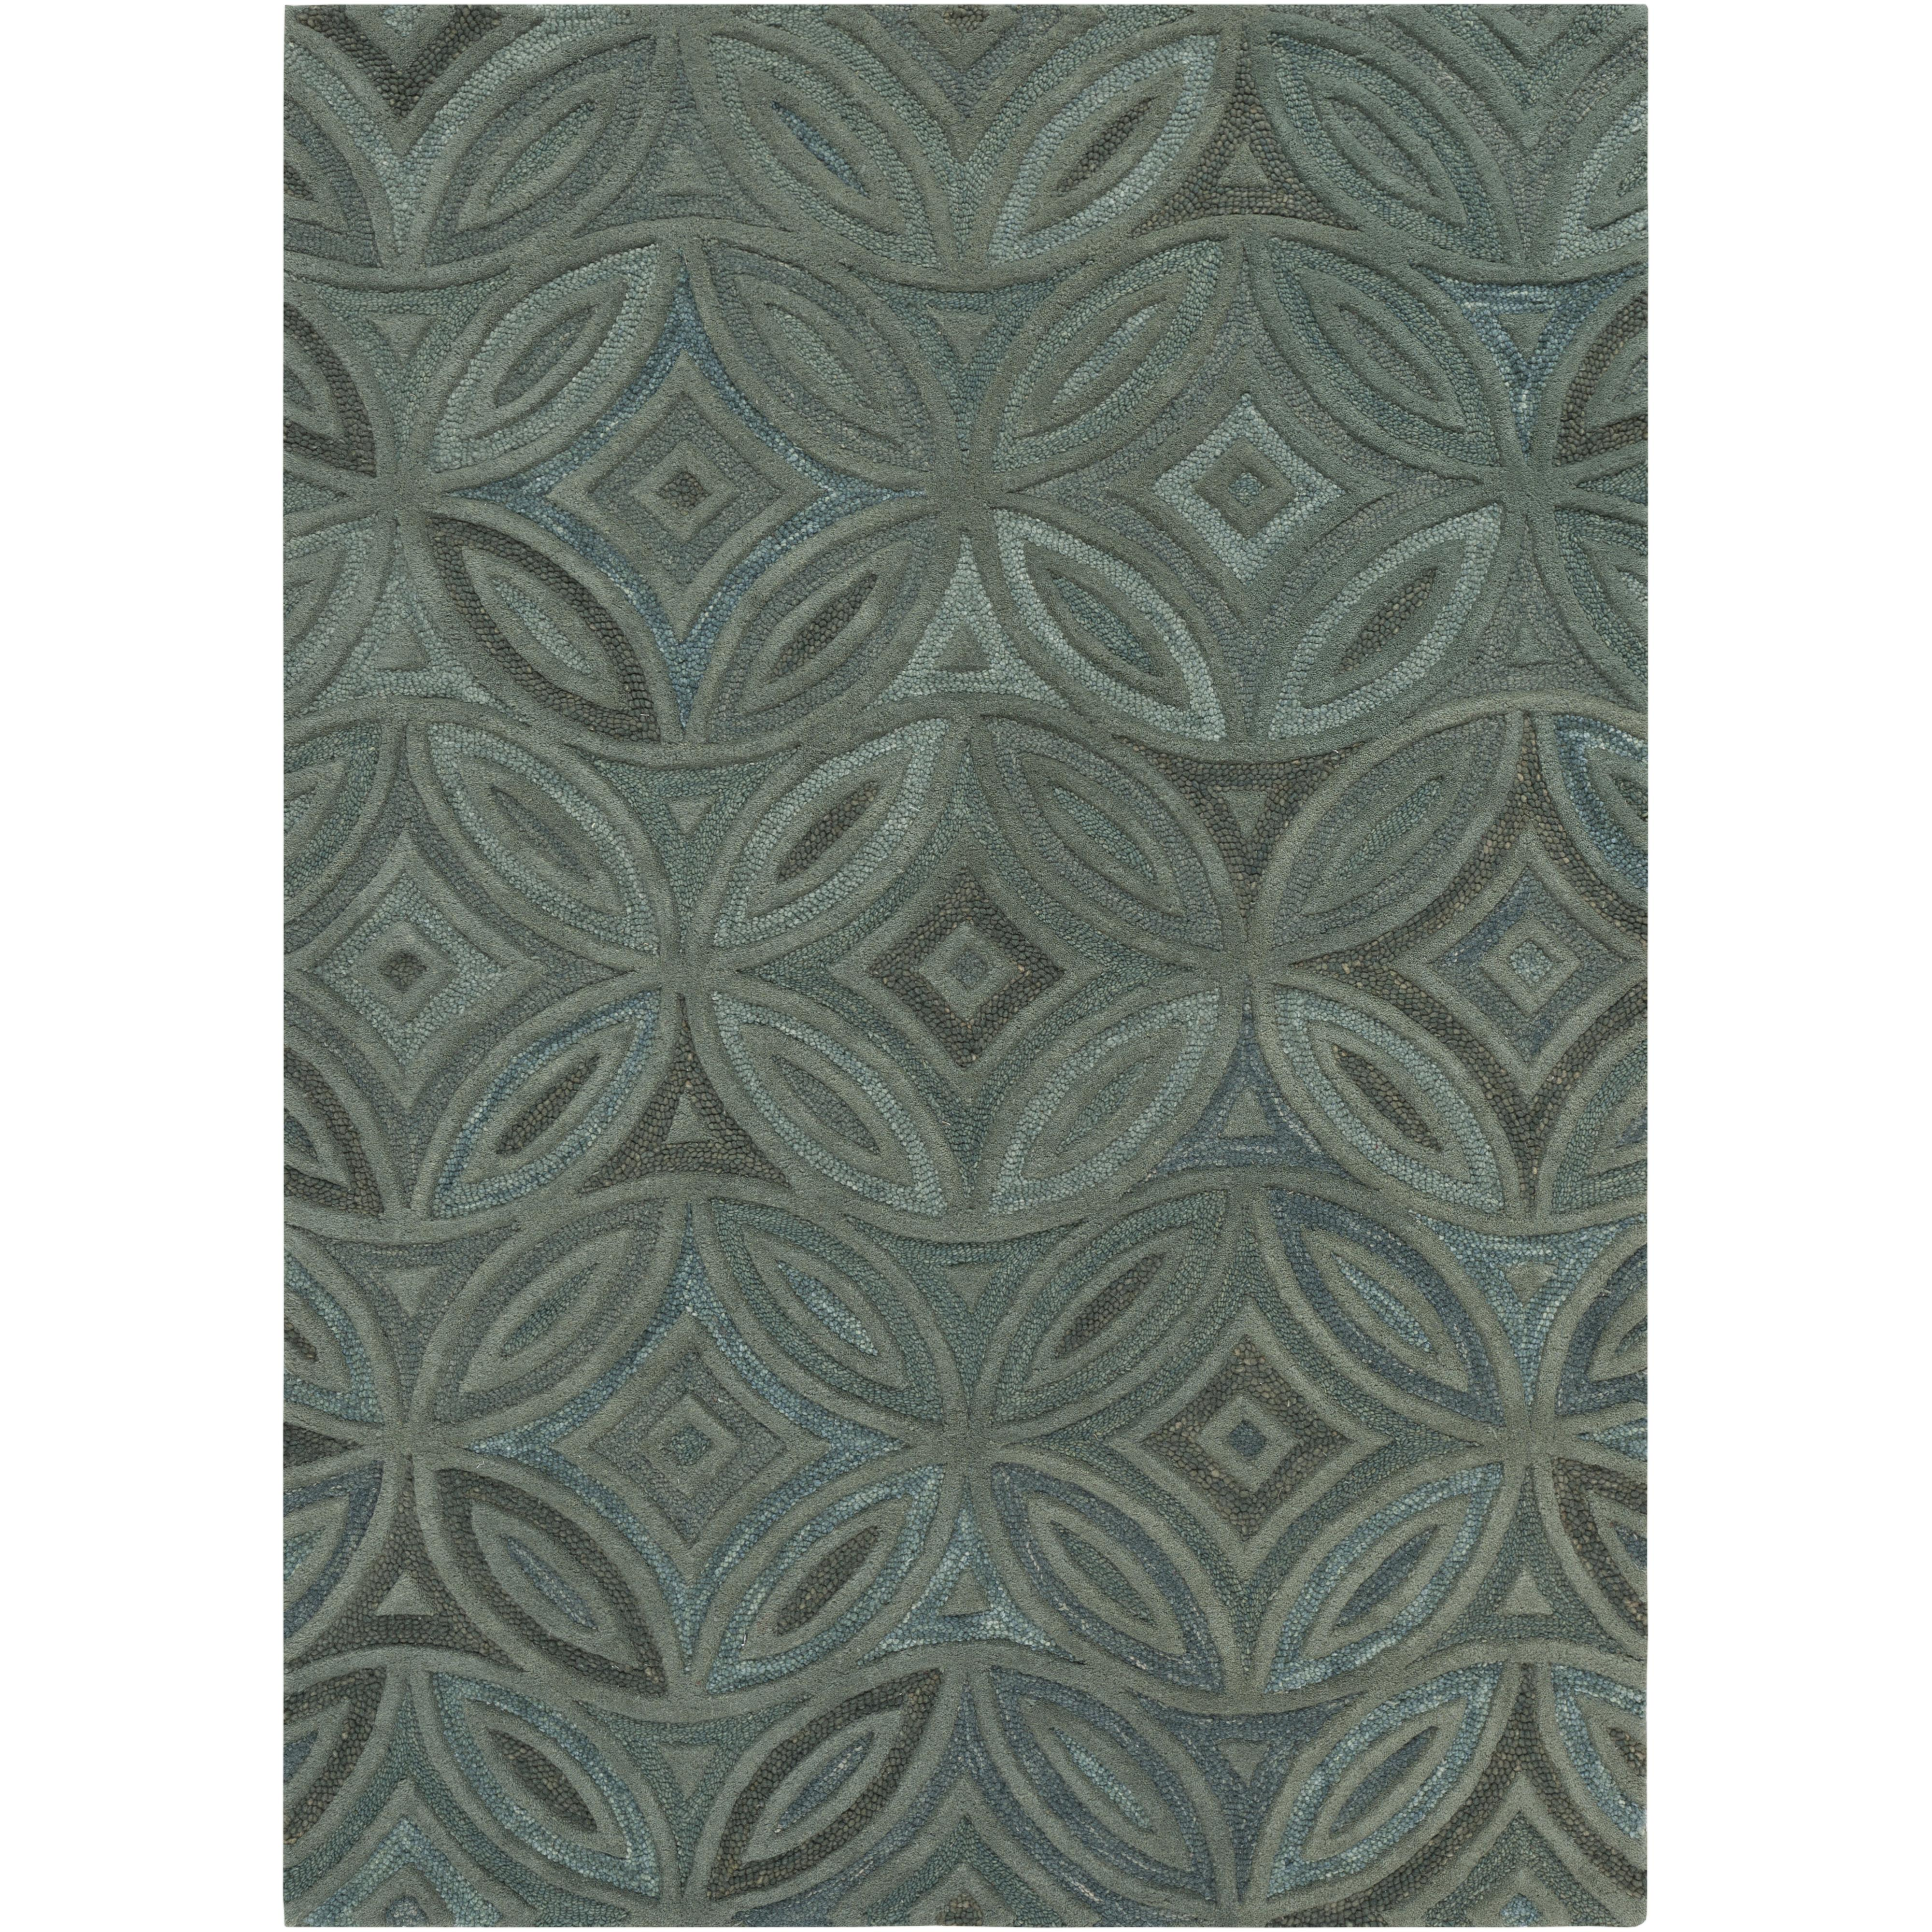 Surya Rugs Perspective 5' x 8' - Item Number: PSV33-58